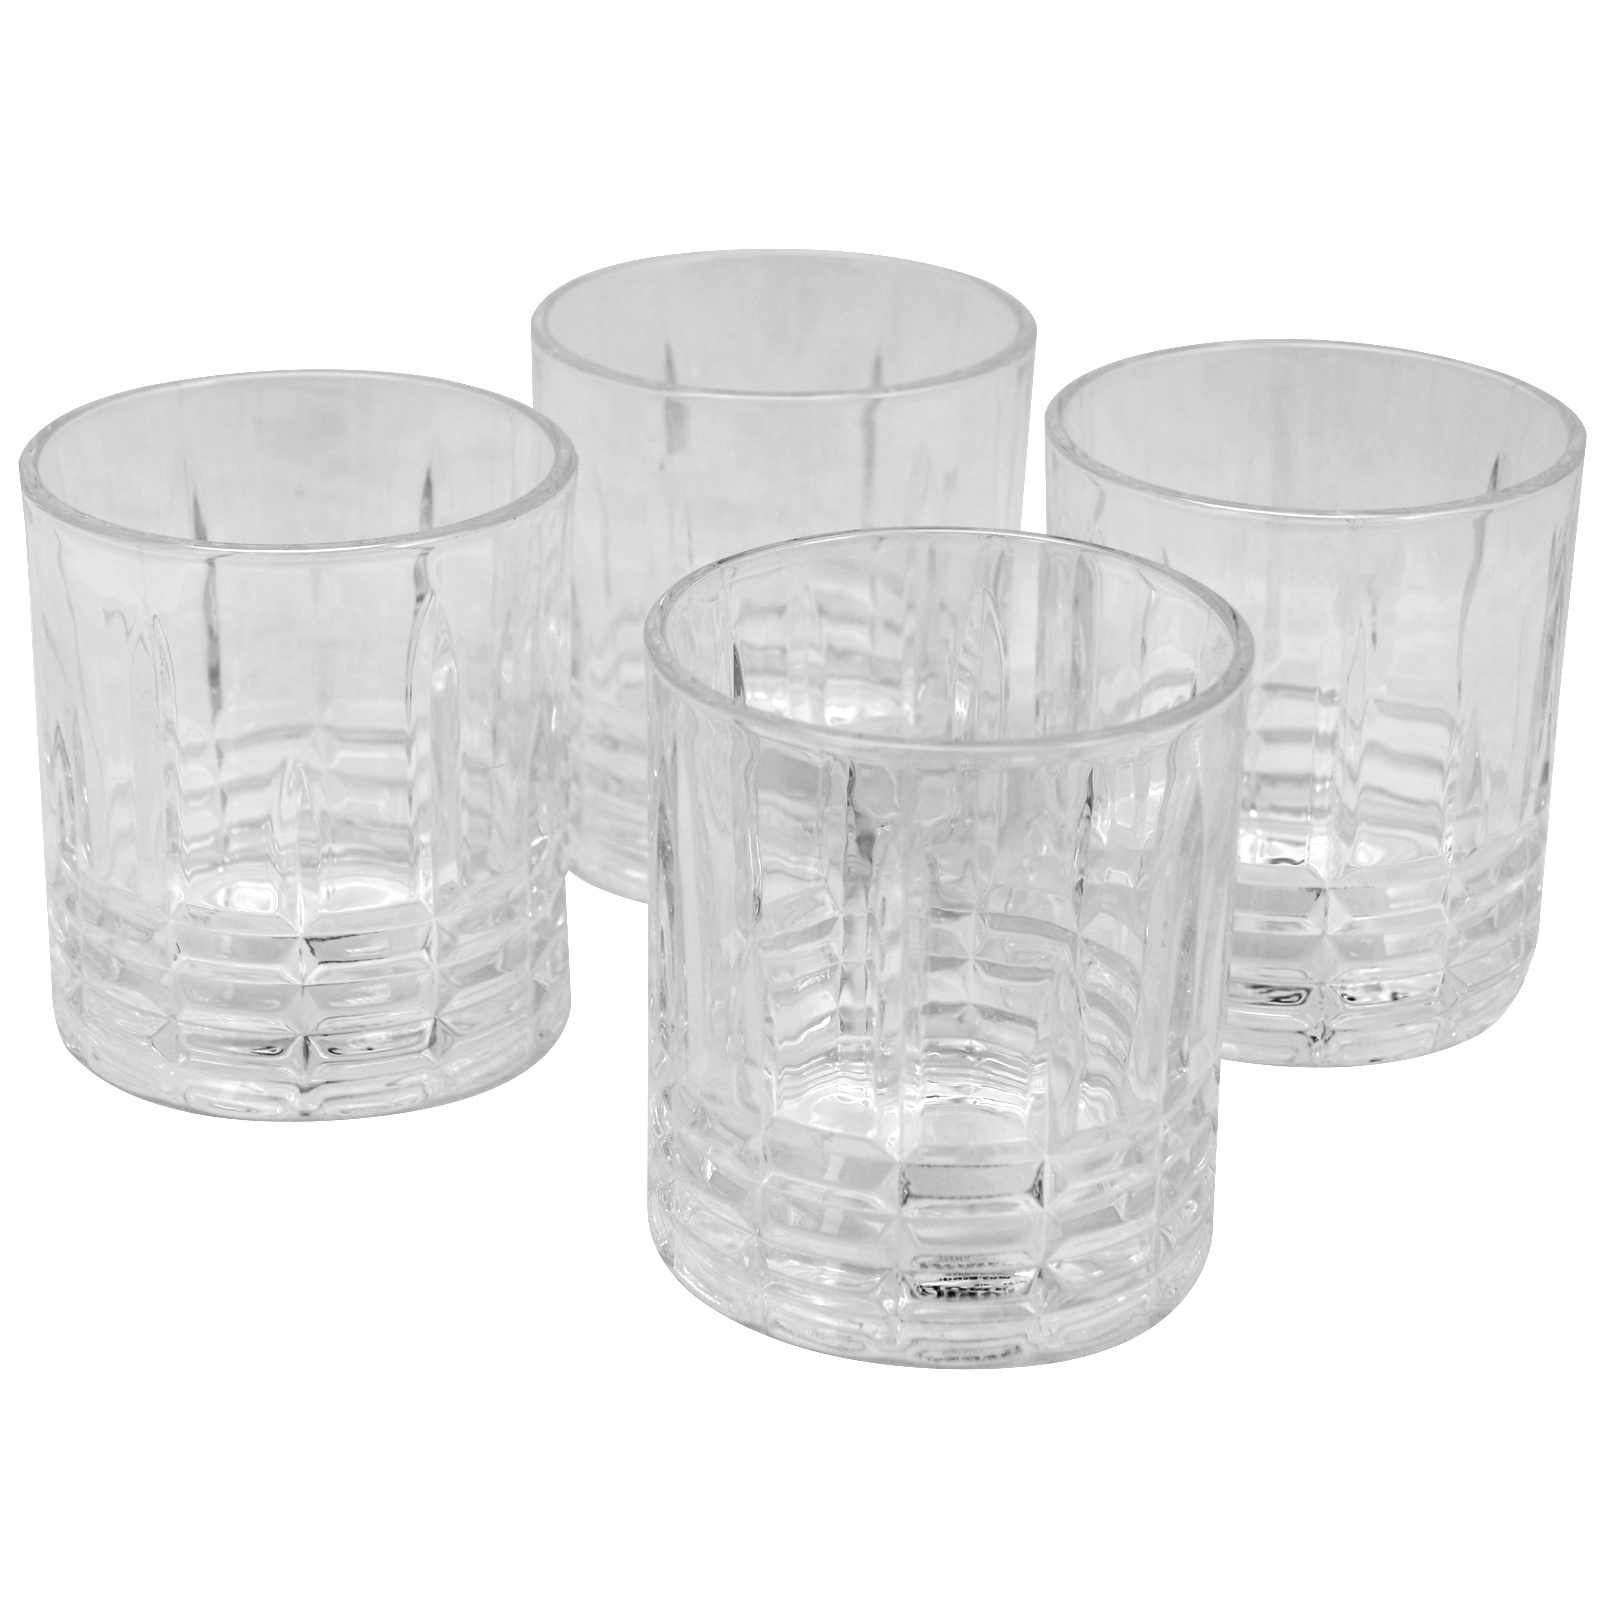 Gibson Home Jewelite 4 Piece 11 oz. Double Old Fashioned Glass Set